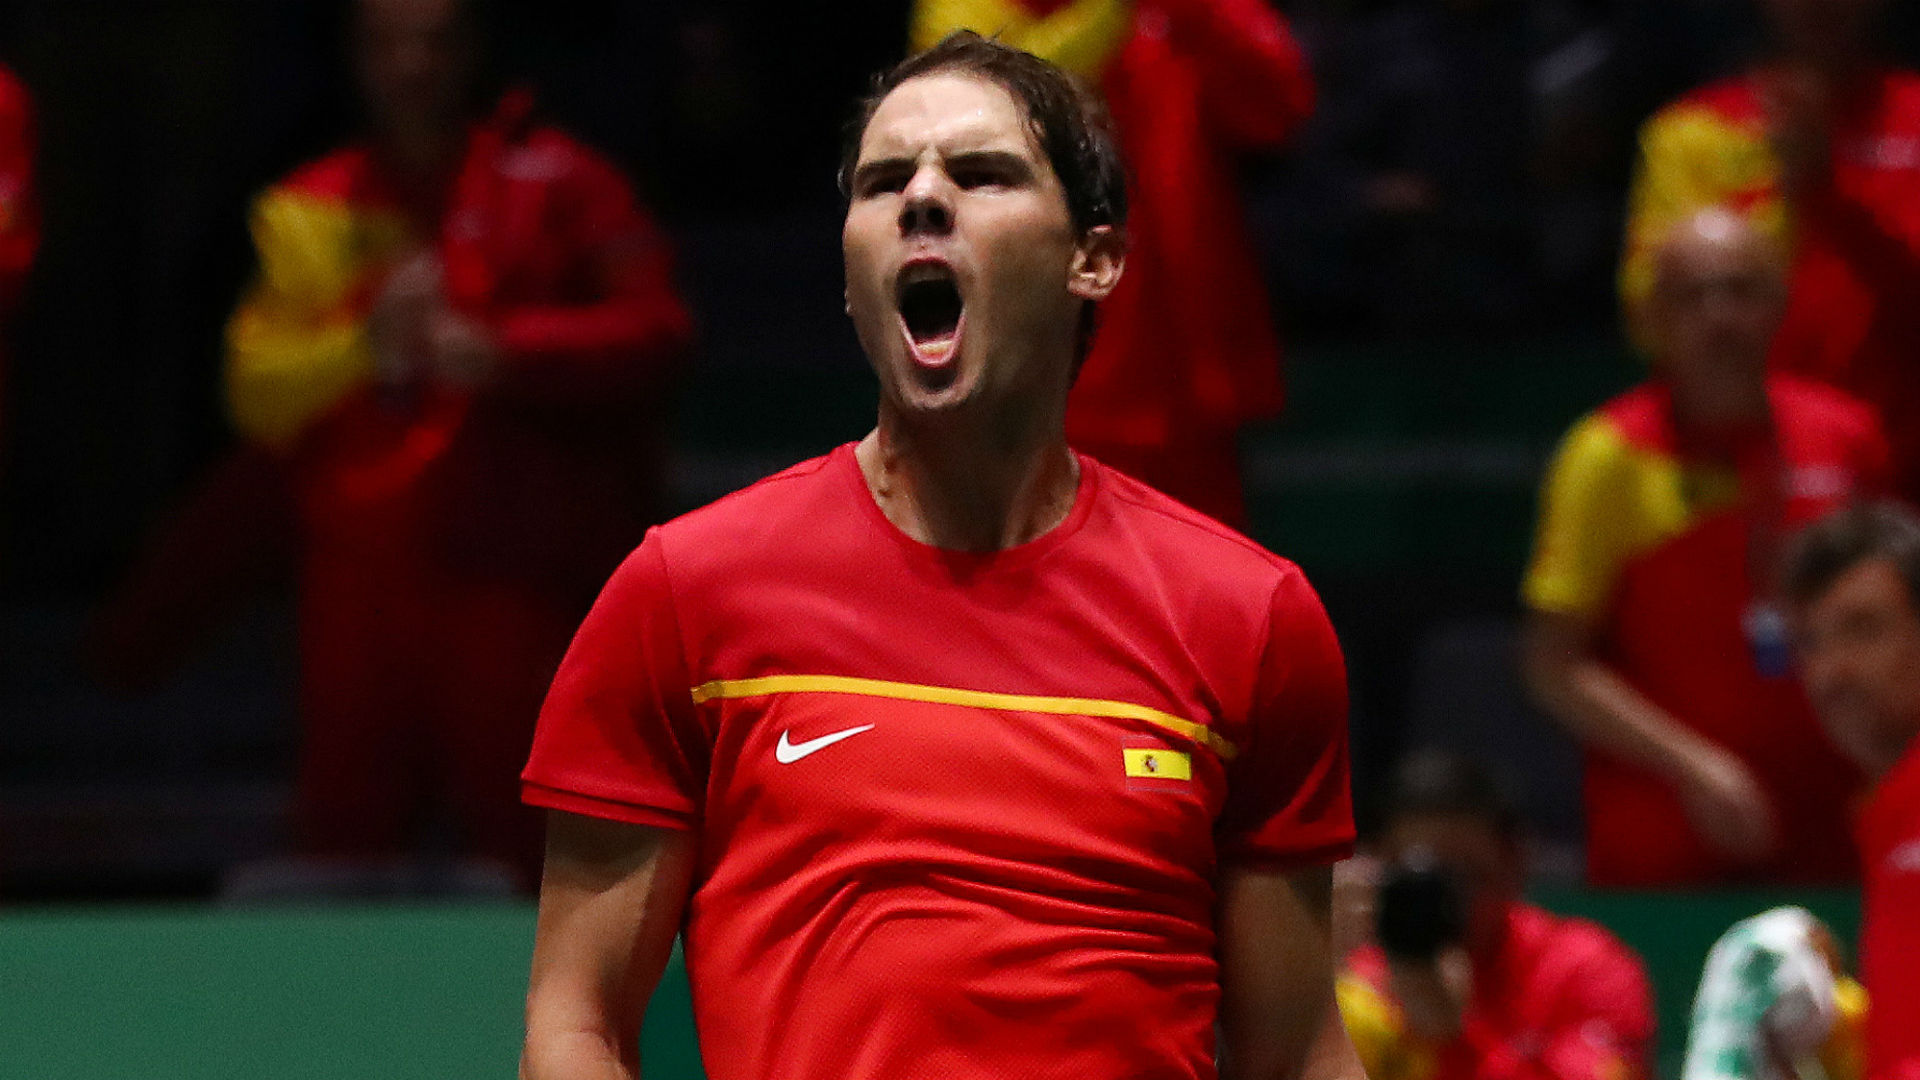 Coronavirus: Spain considers domestic summer tour that could star Nadal, report says